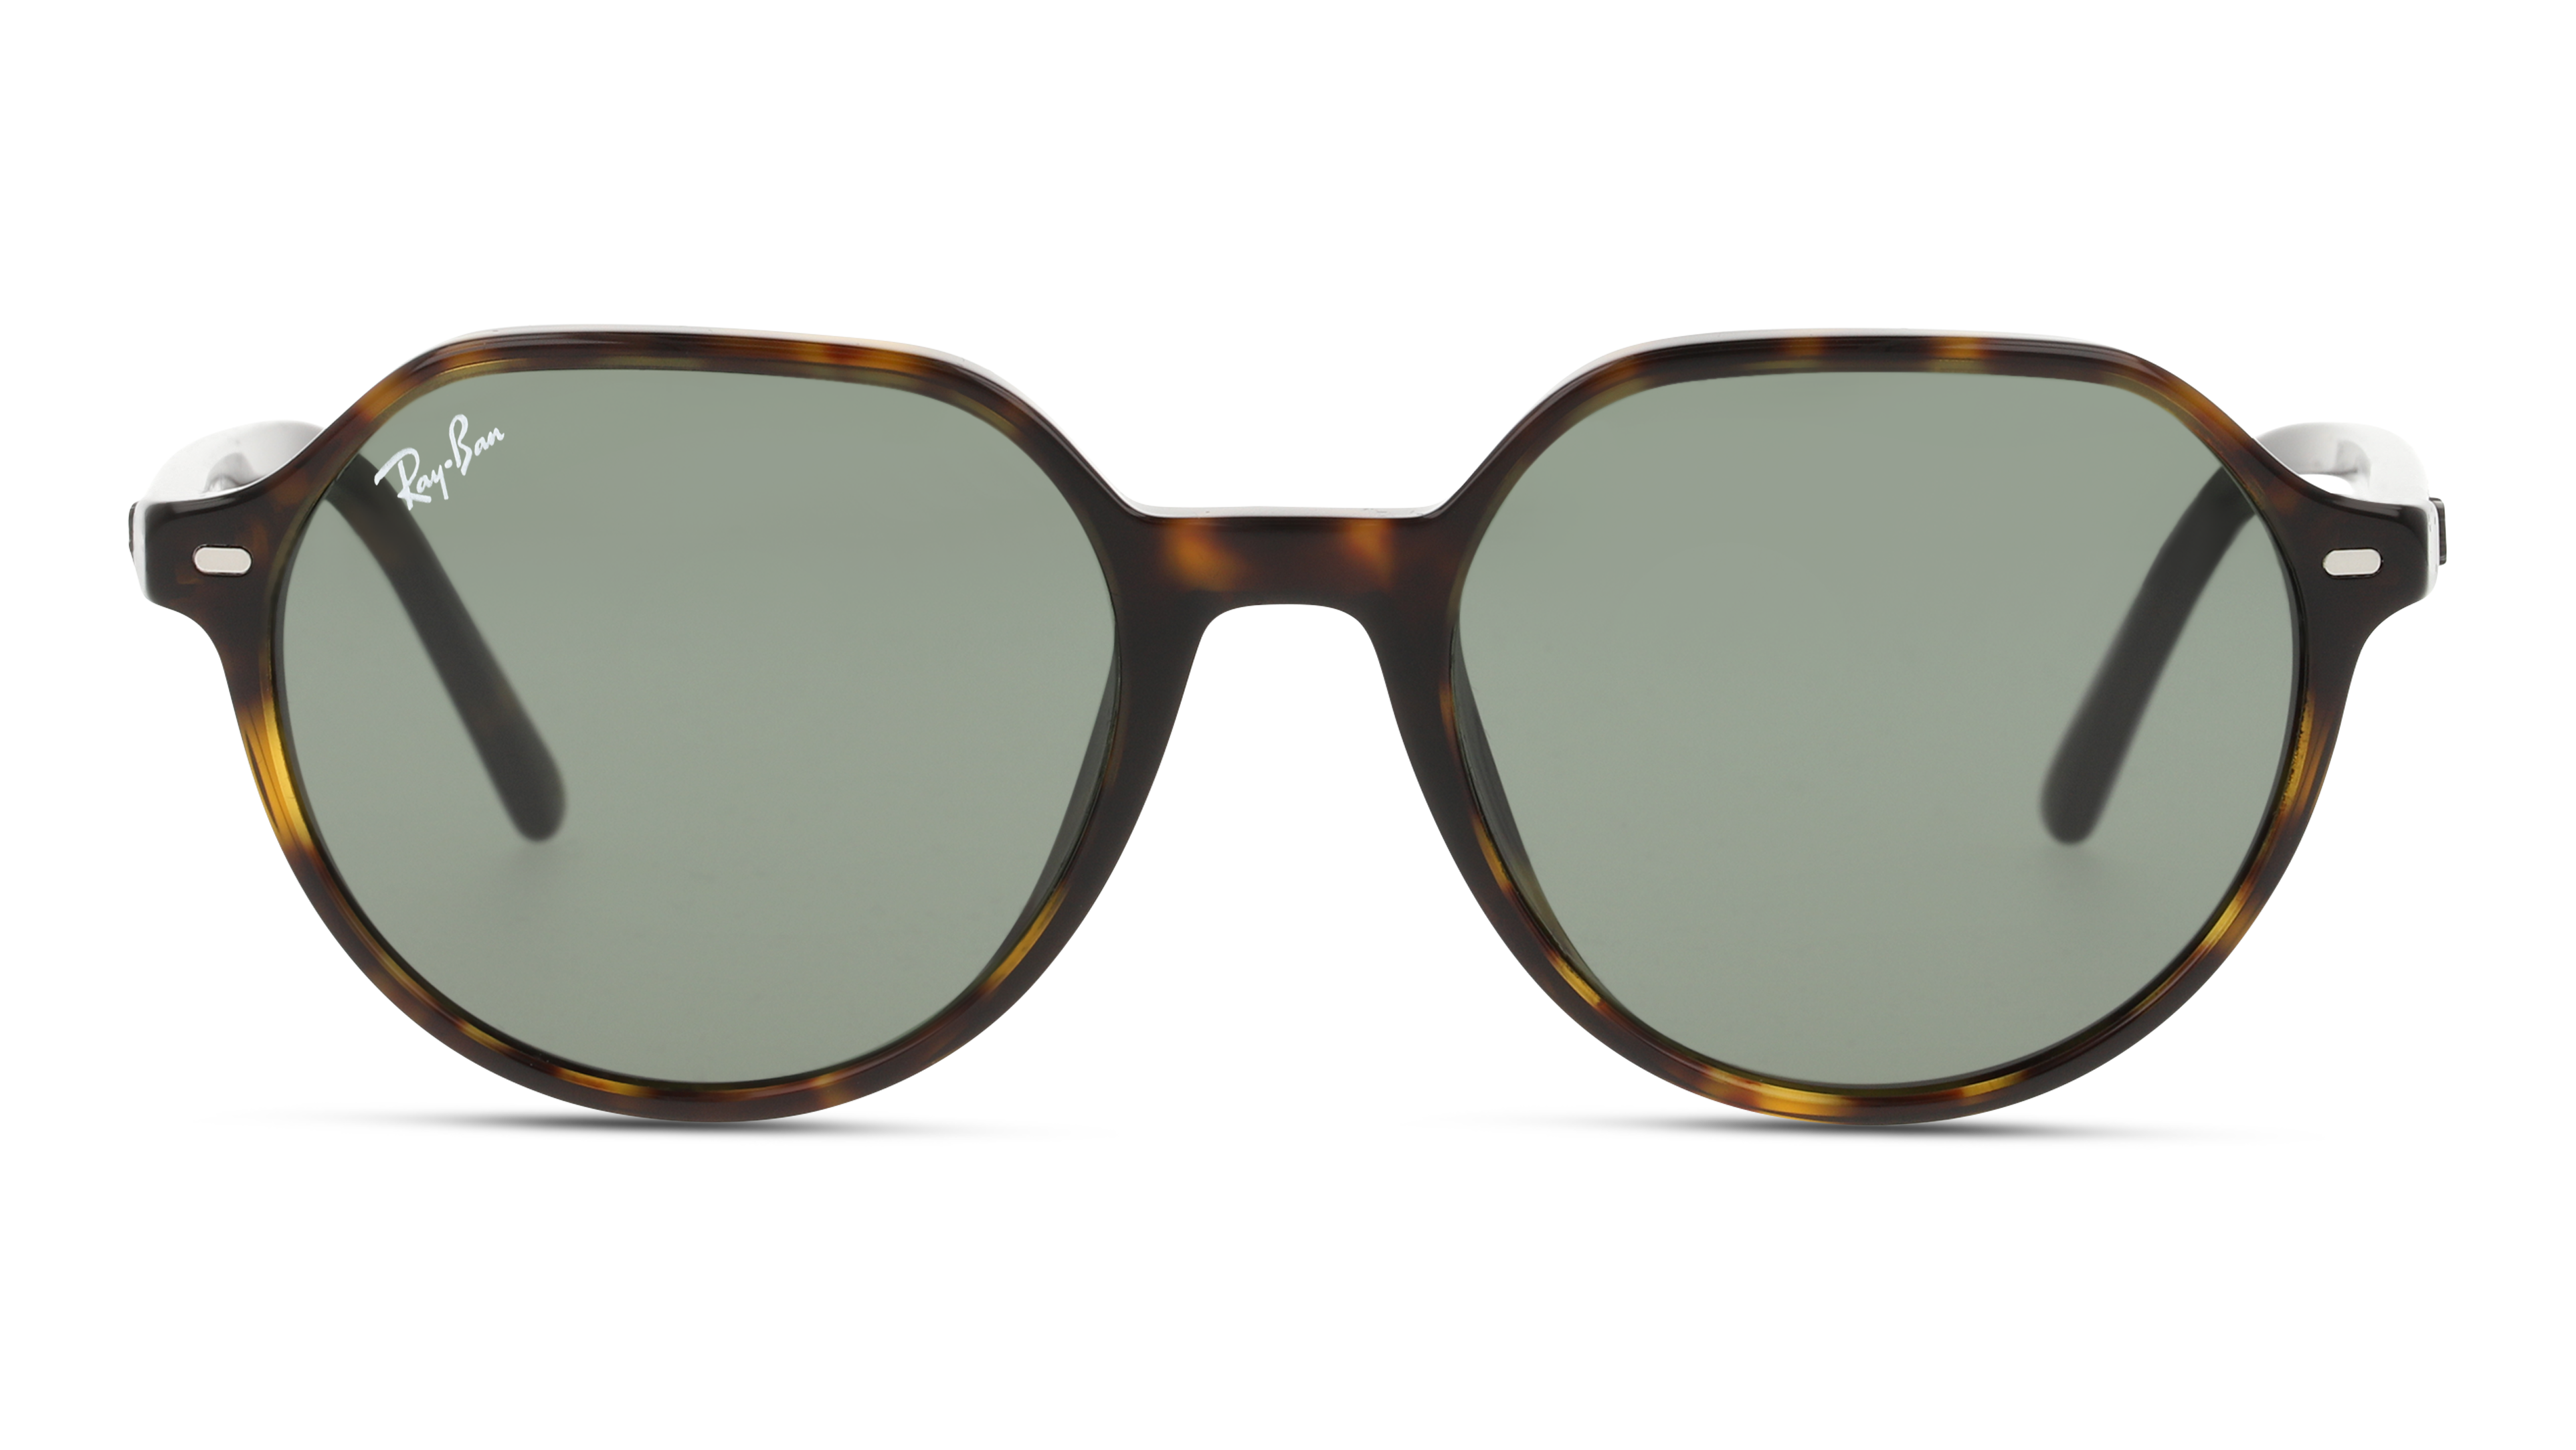 Front Ray-Ban 0RB2195/902/31/5118/145 Brun